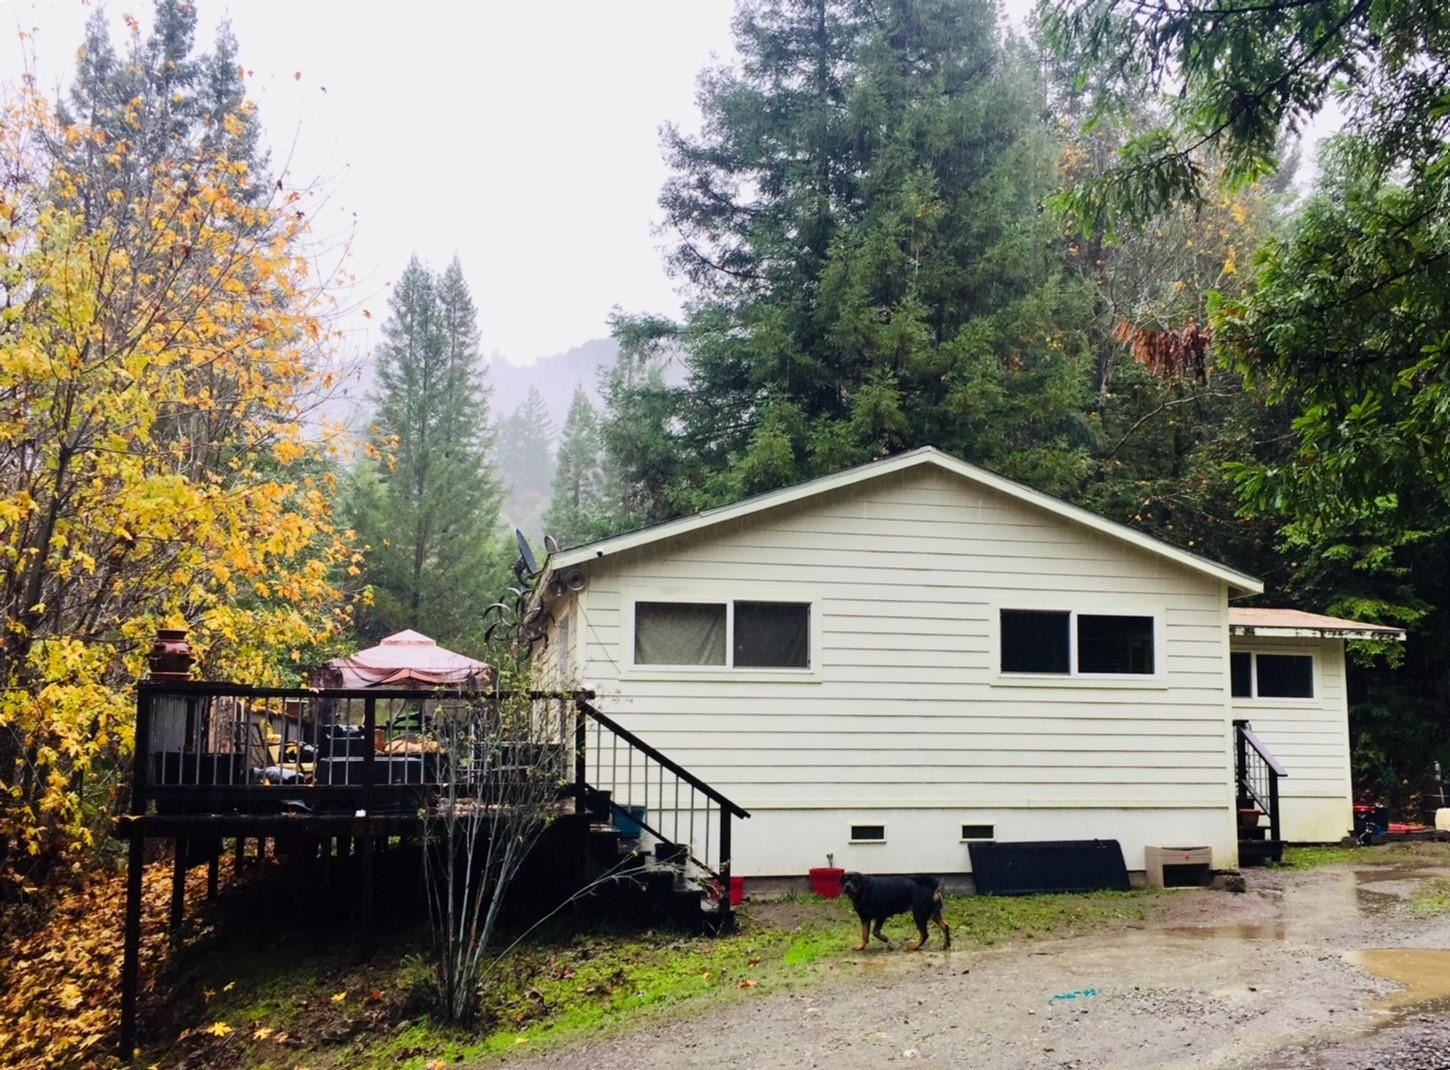 000 Fish Canyon Road, Garberville, CA 95542 - #: 249404